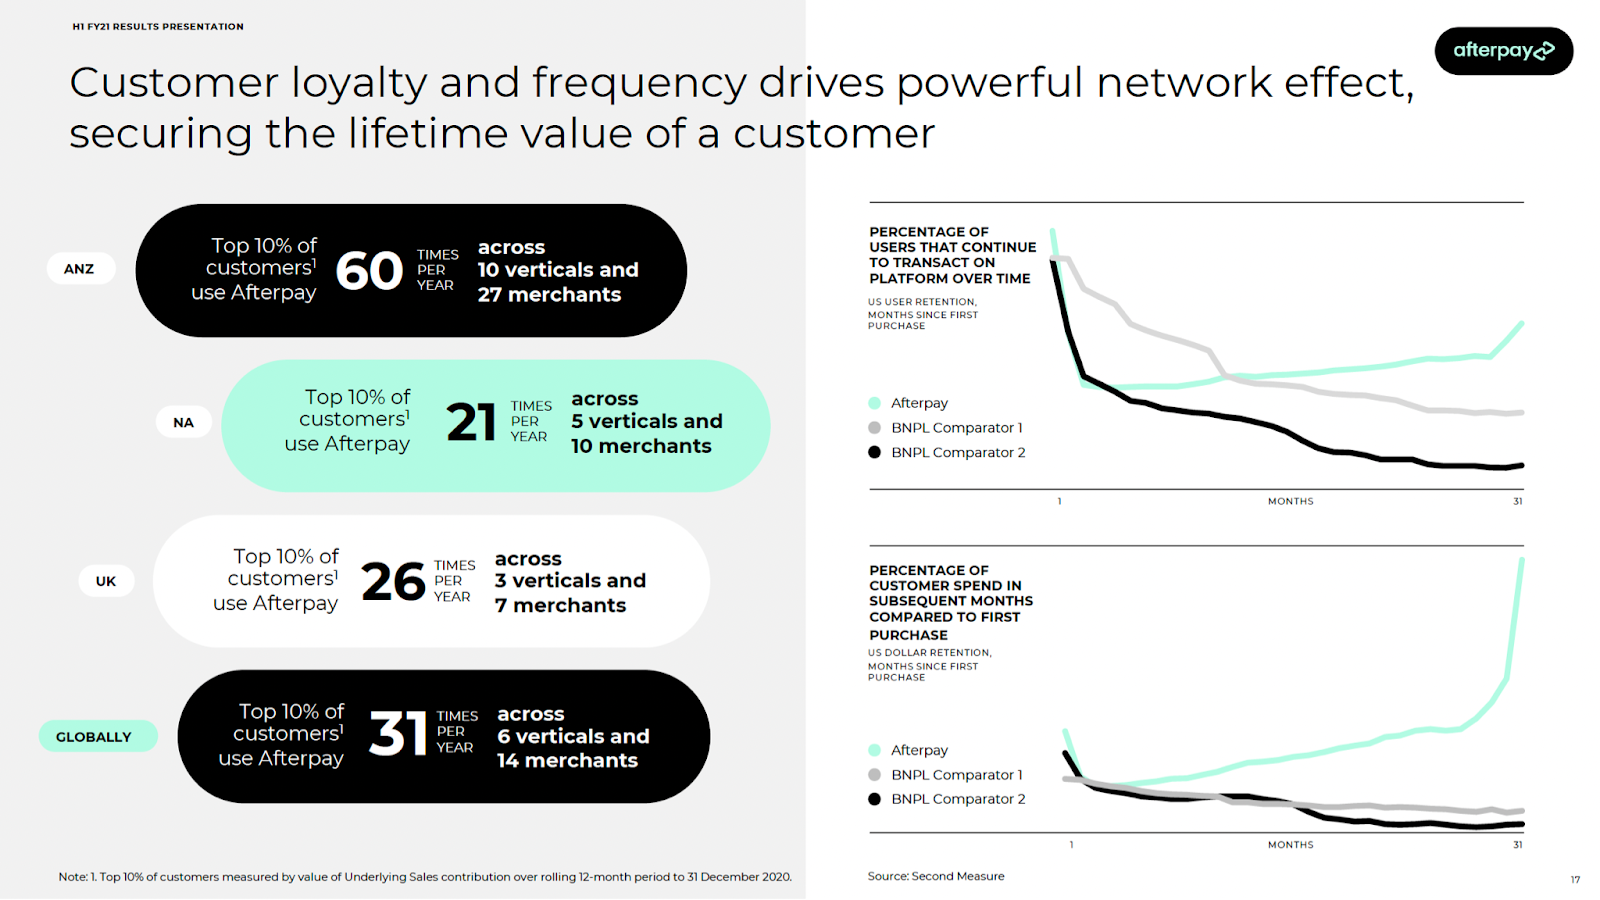 Consumer loyalty and frequency drives powerful network effect, securing the lifetime value of a consumer